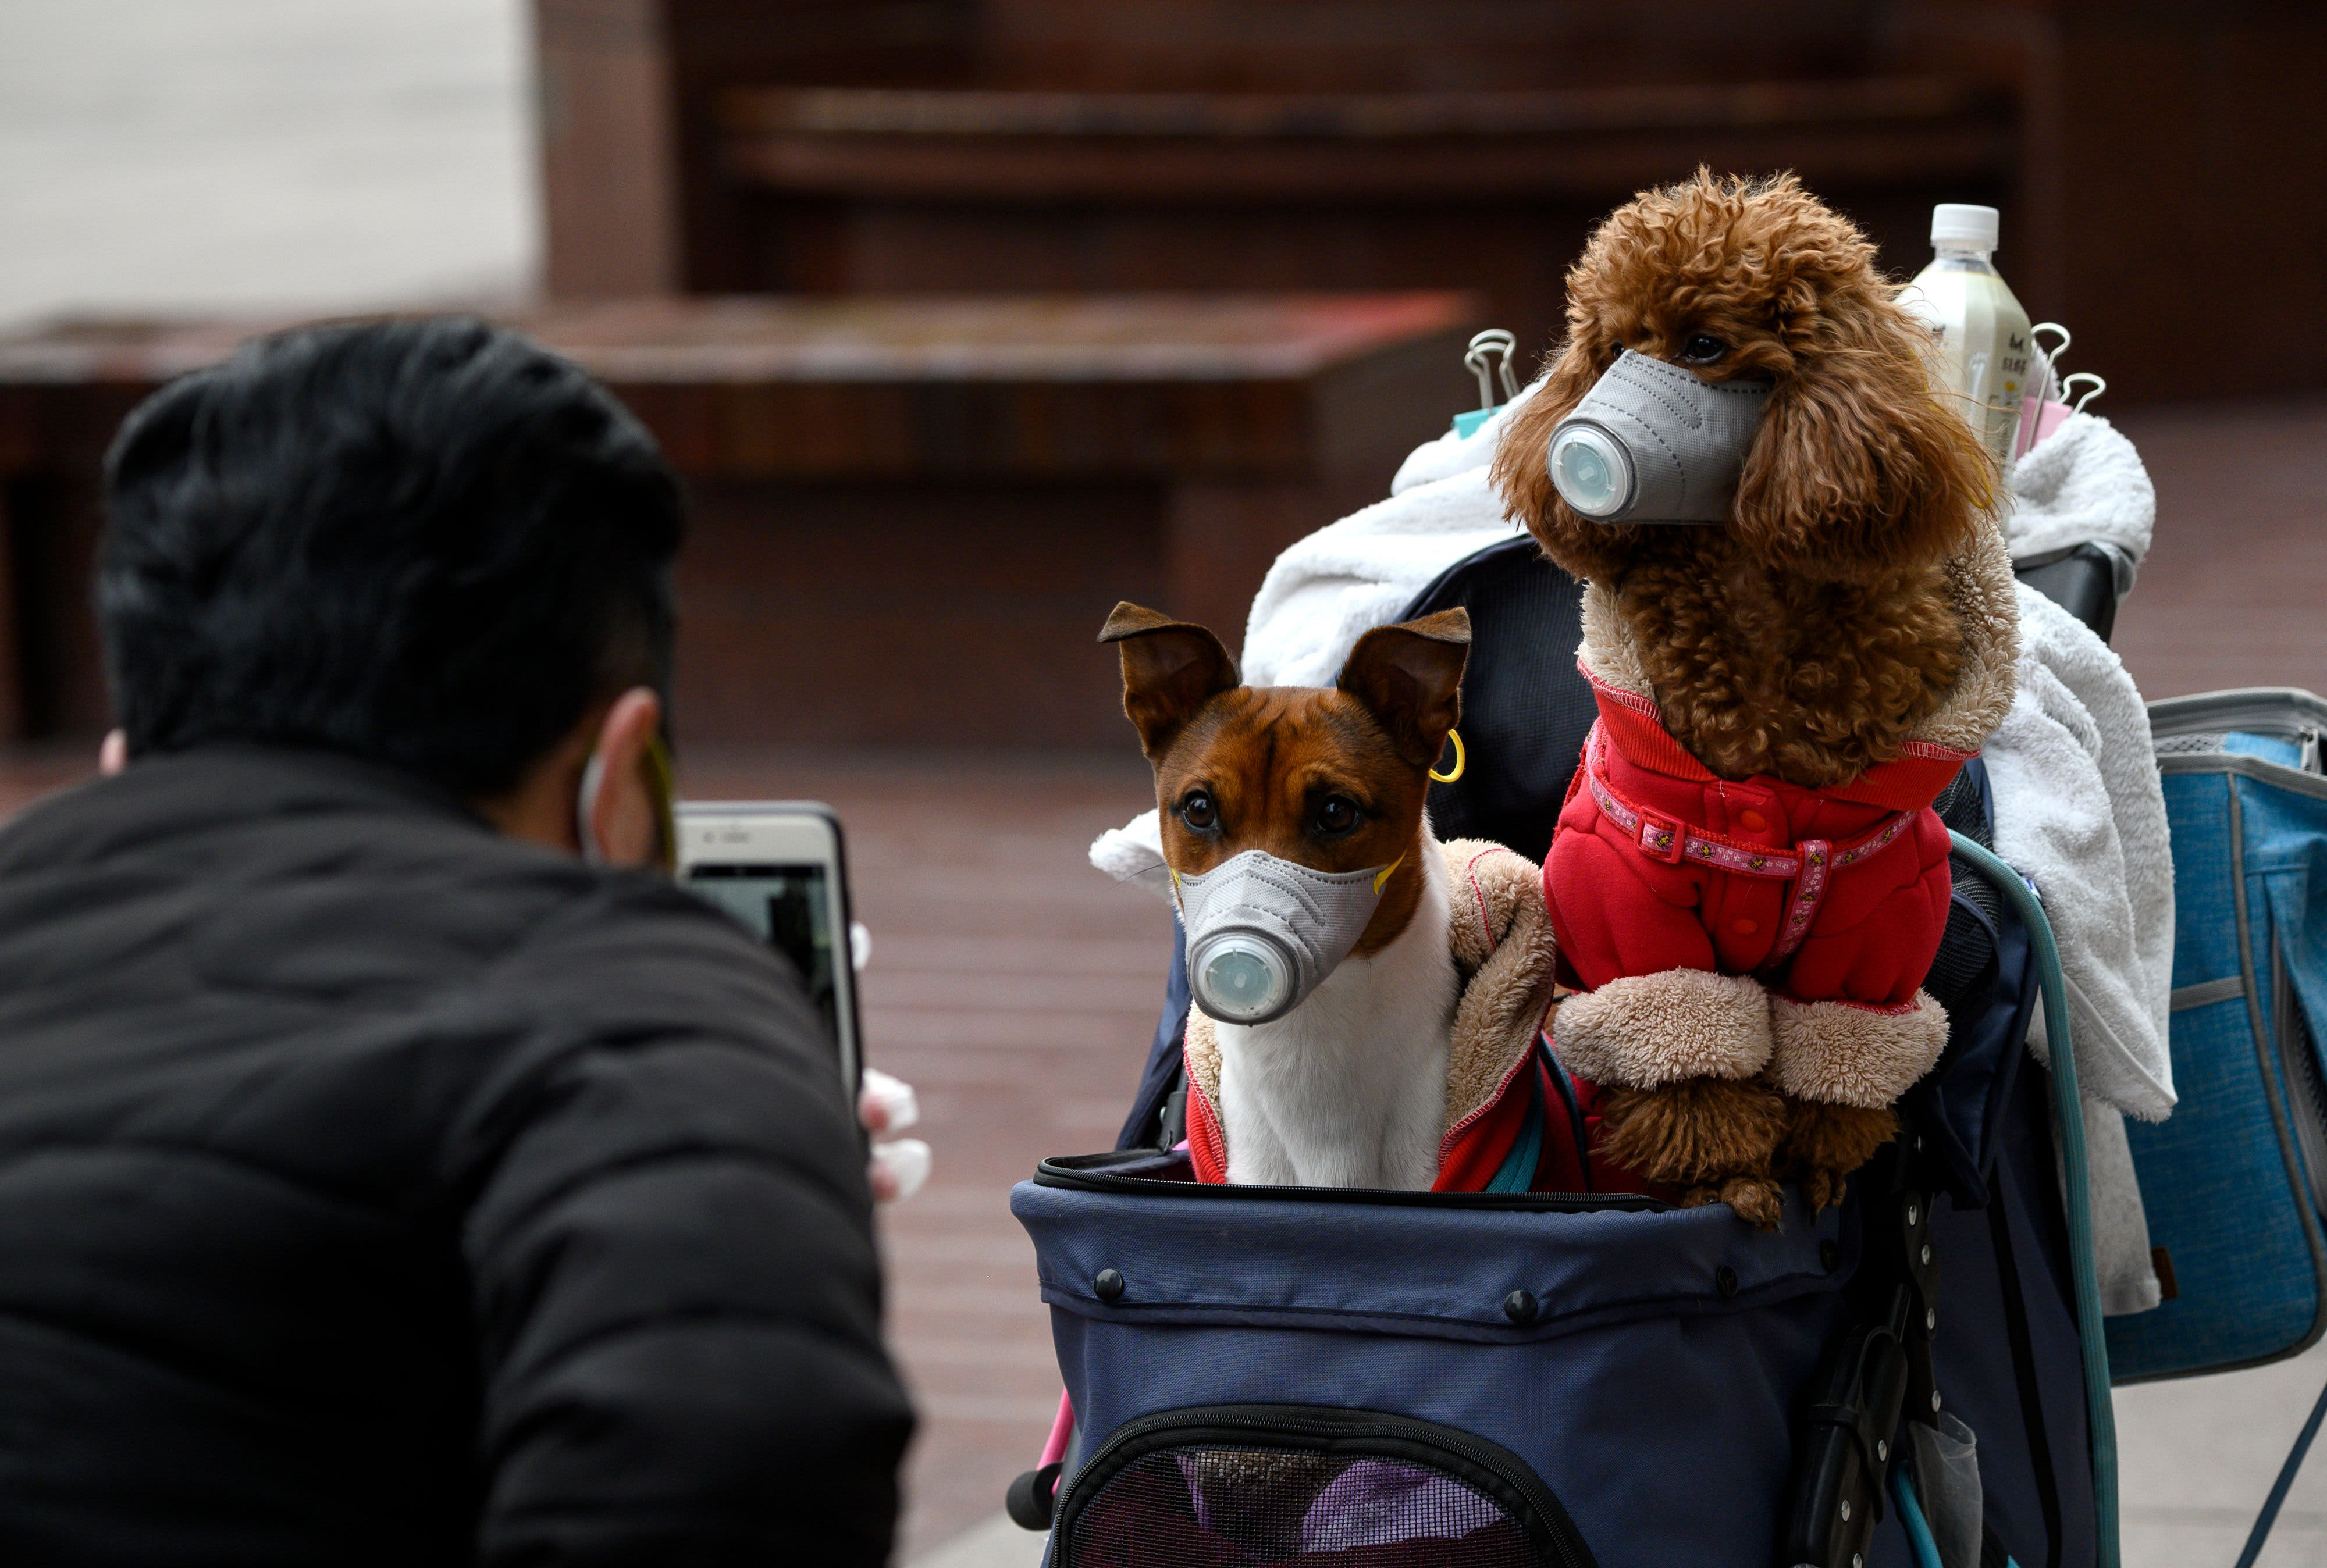 A dog in Hong Kong tests positive for the coronavirus, WHO confirms